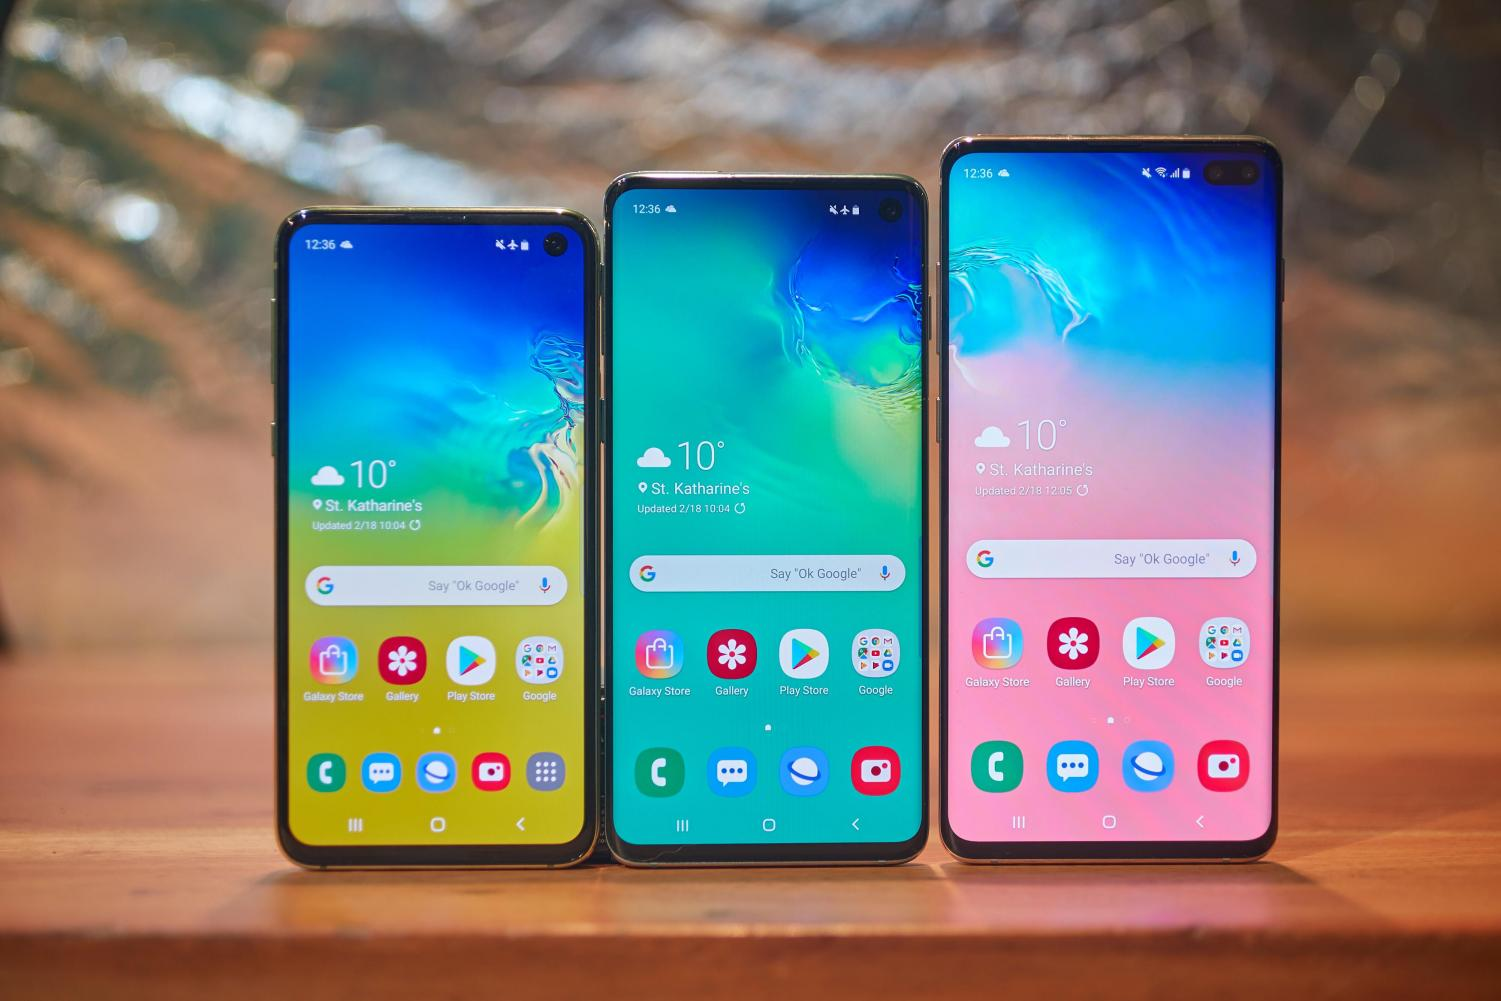 Samsung Galaxy S10 has very promising software, but it seems the software is not the same quality.